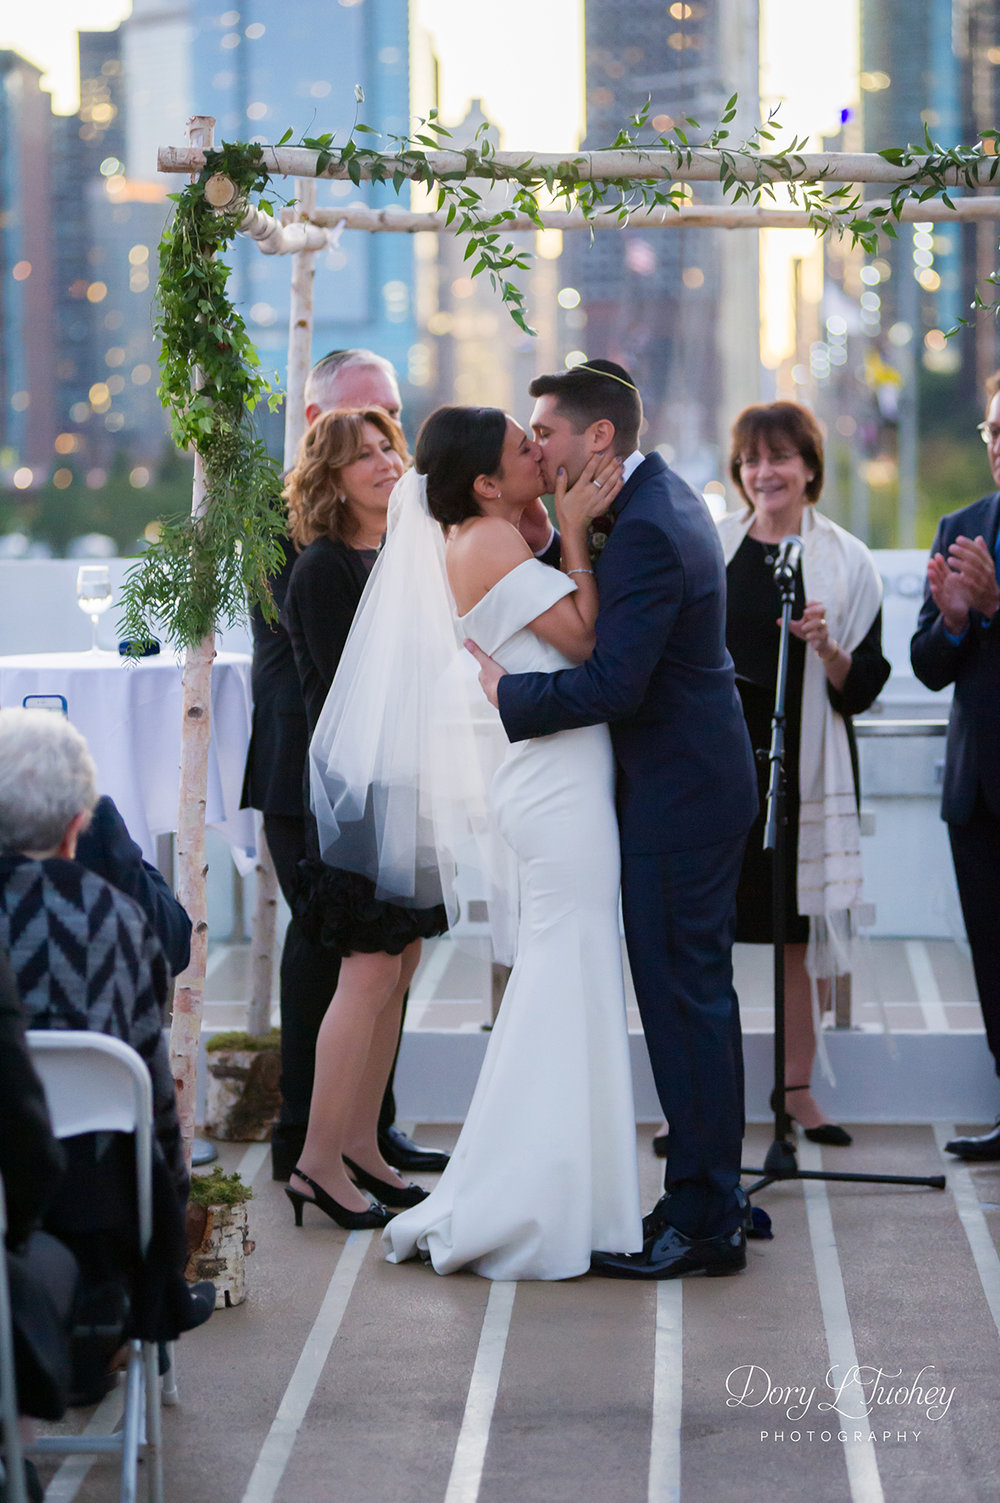 Dory_chicago_wedding_navy_pier_boat_cruise_skyline_sunset_jewish_bride_groom_23.jpg